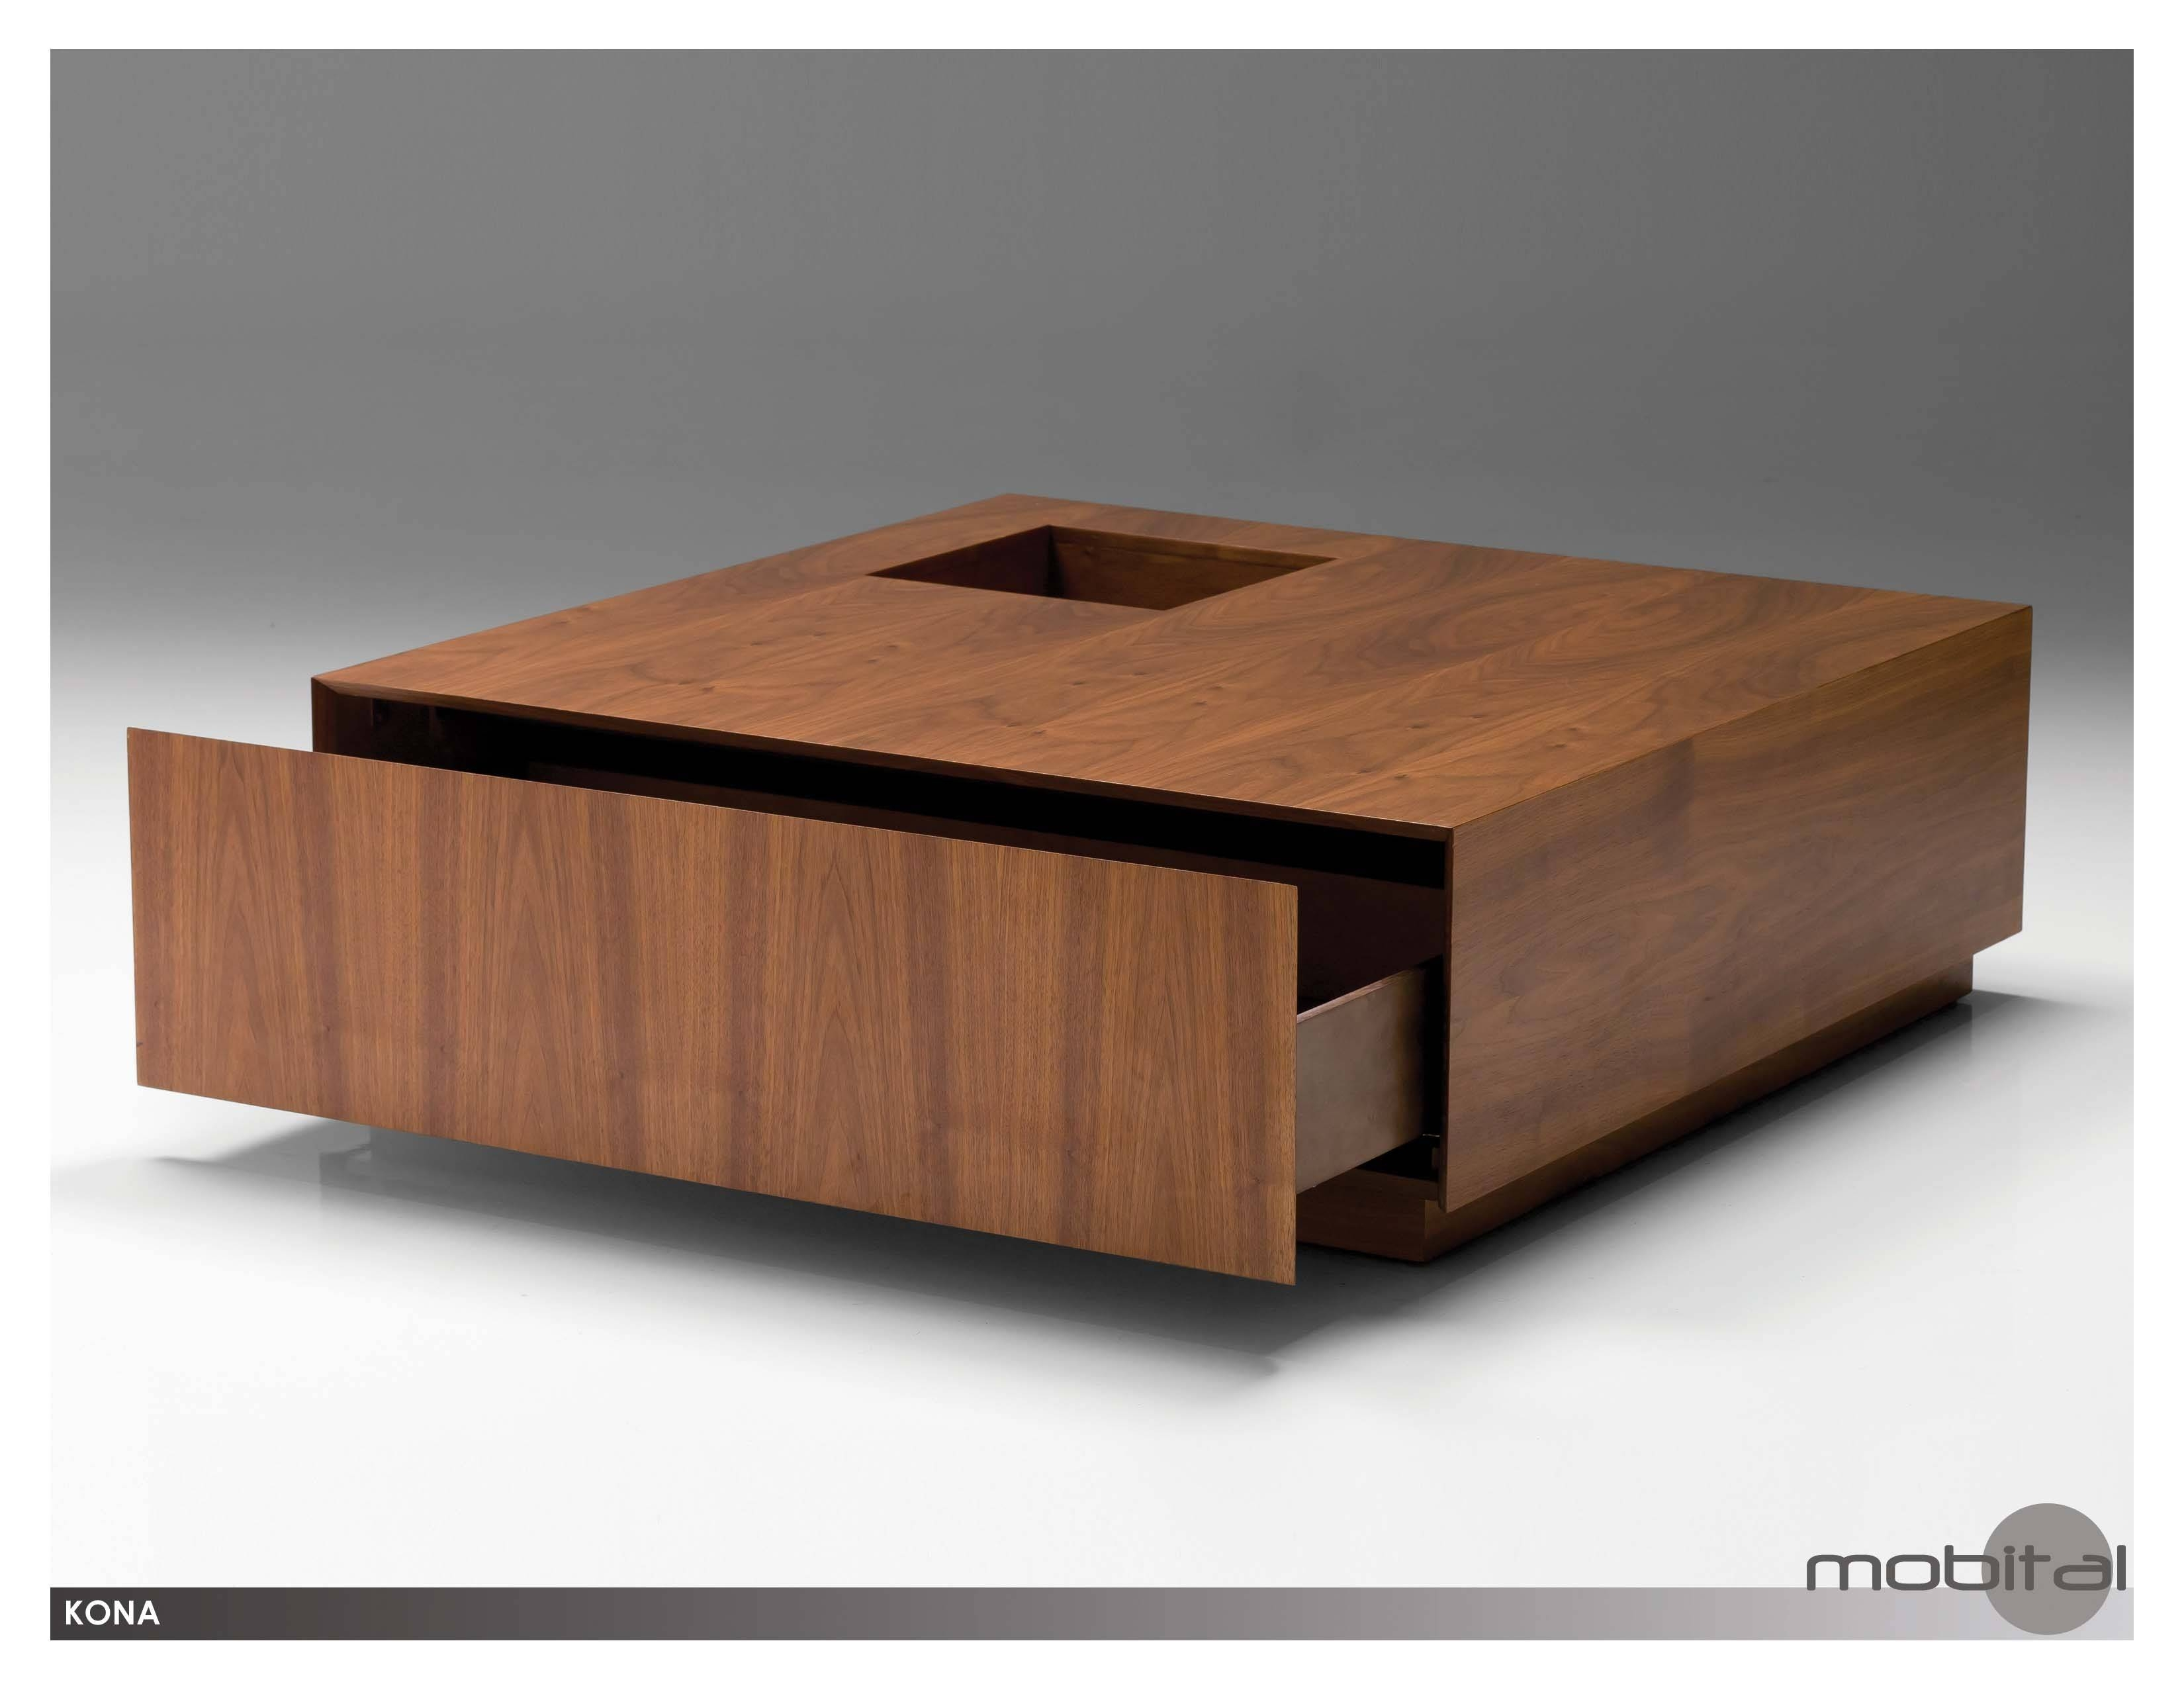 Coffee Table: Amusing Square Coffee Table With Storage Designs regarding Square Coffee Tables With Storages (Image 4 of 30)